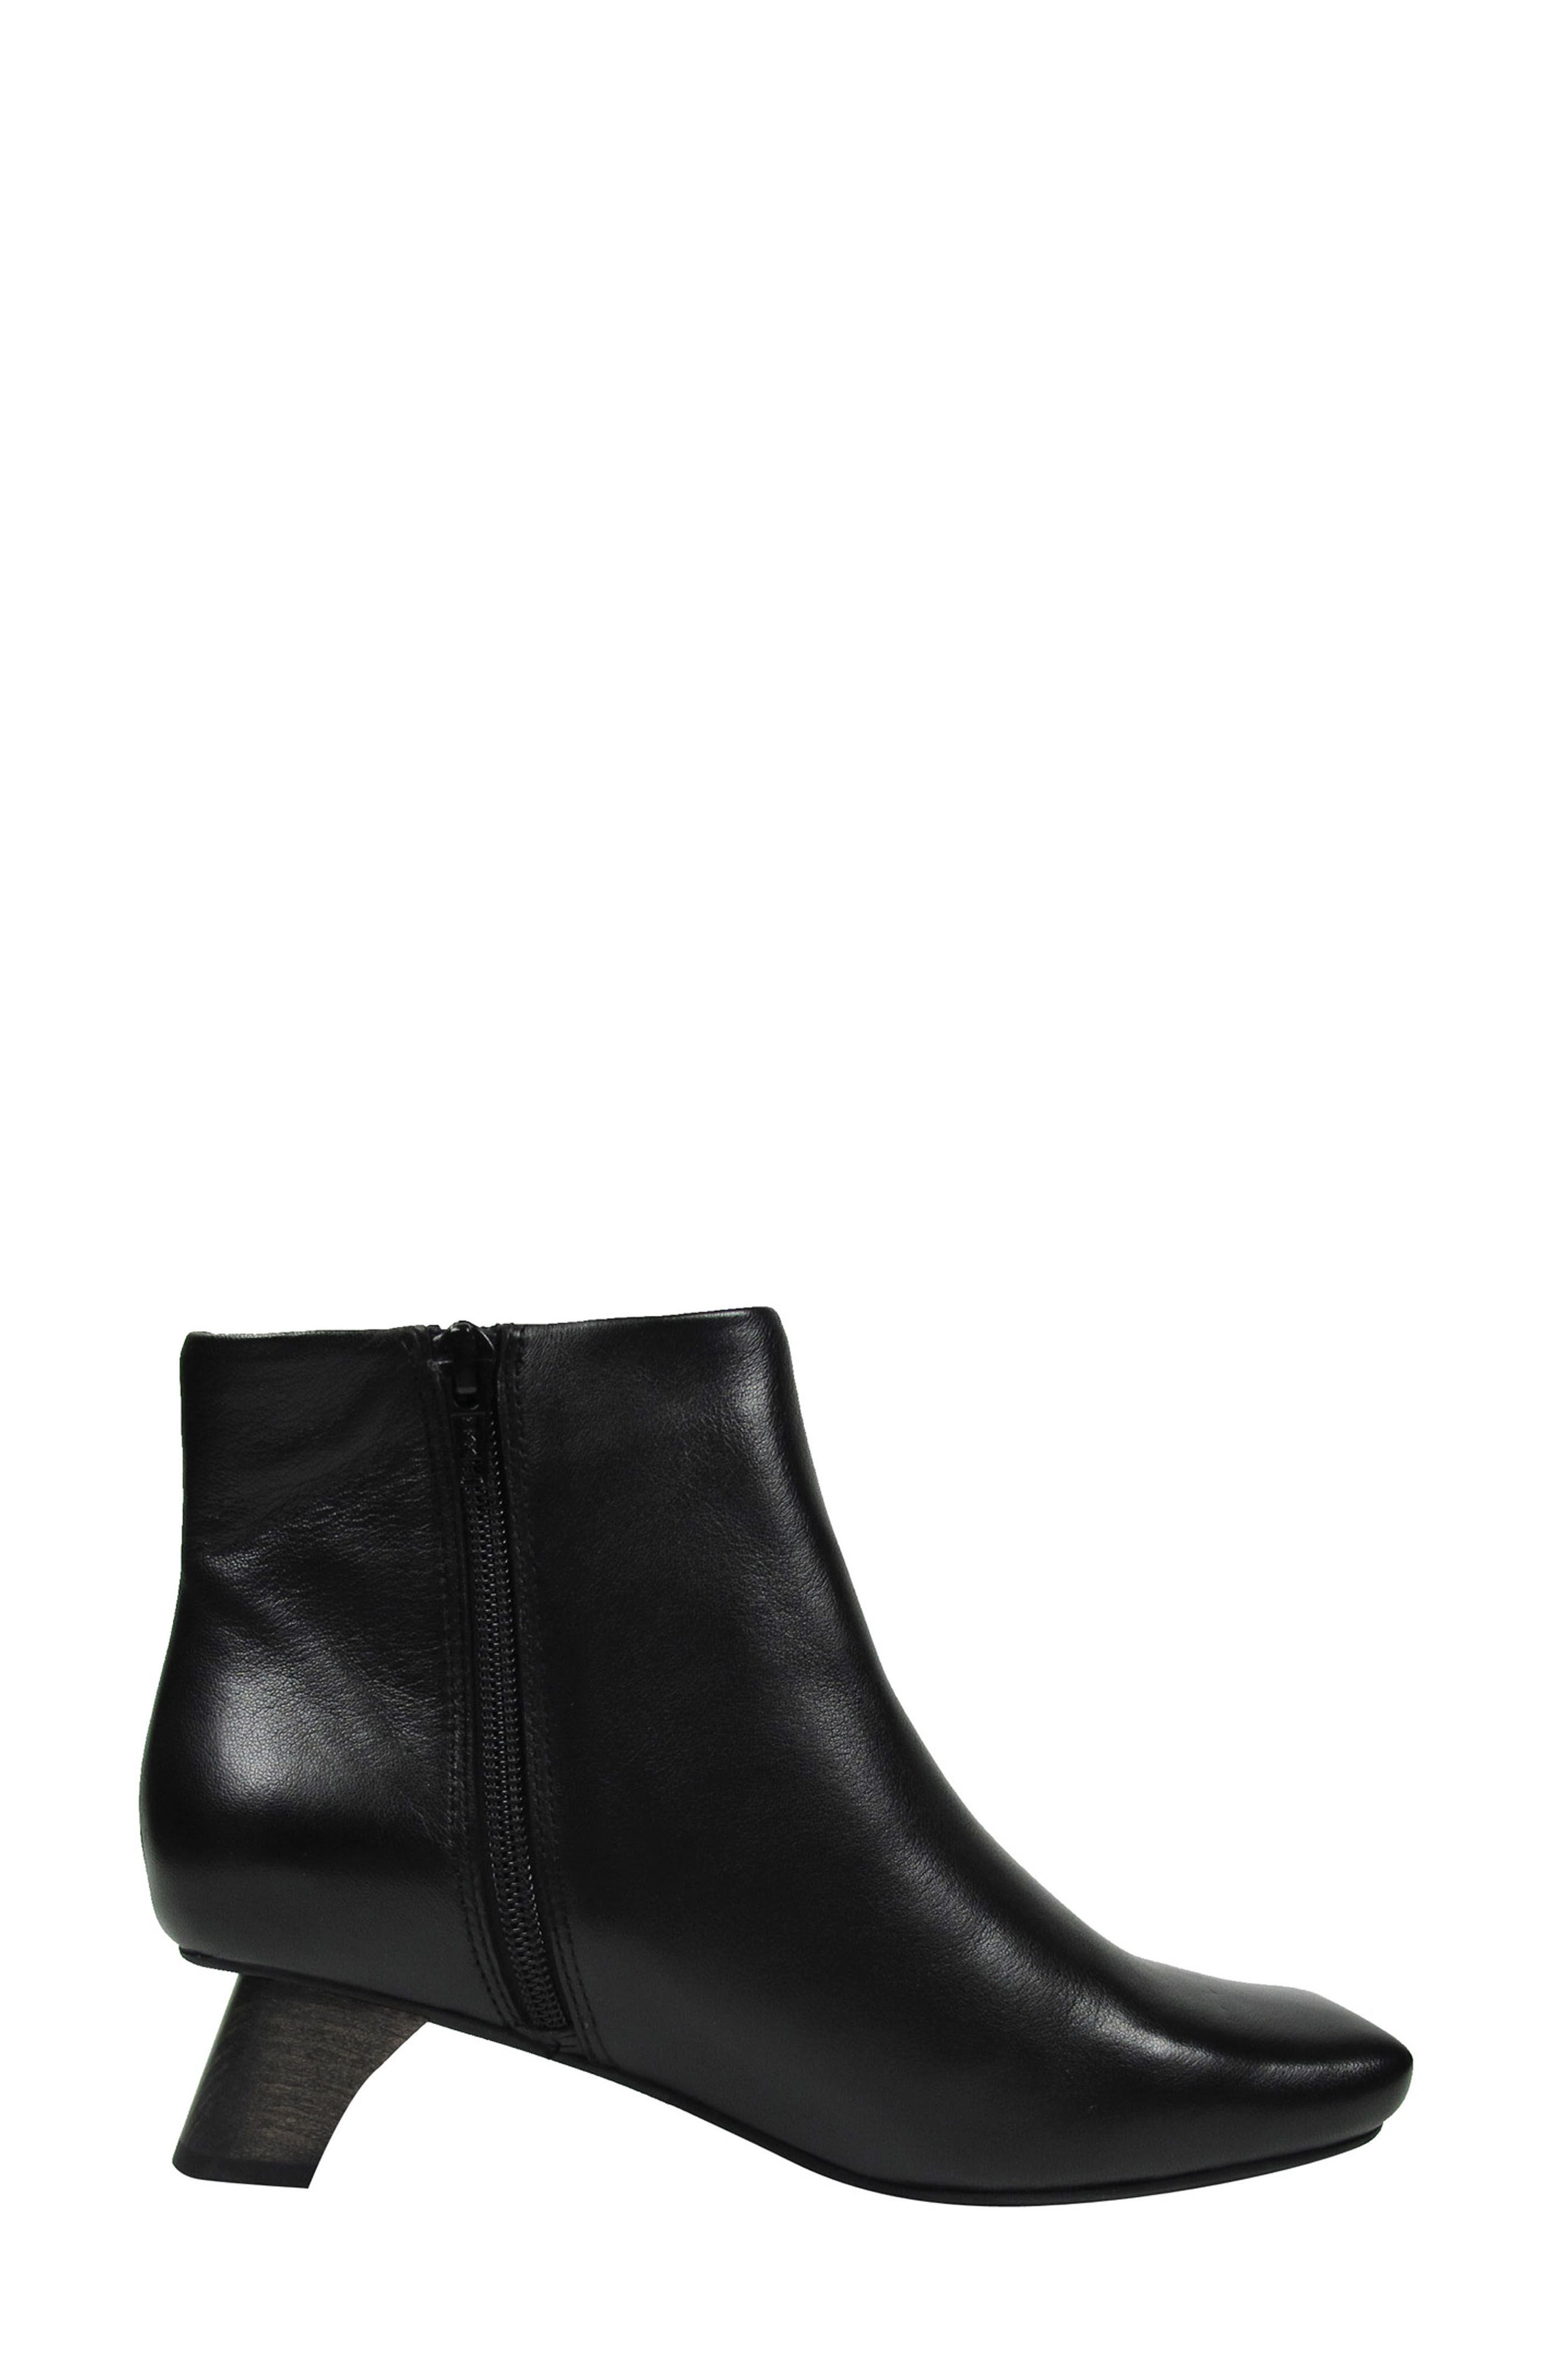 Willomina Bootie,                             Main thumbnail 1, color,                             Black Leather